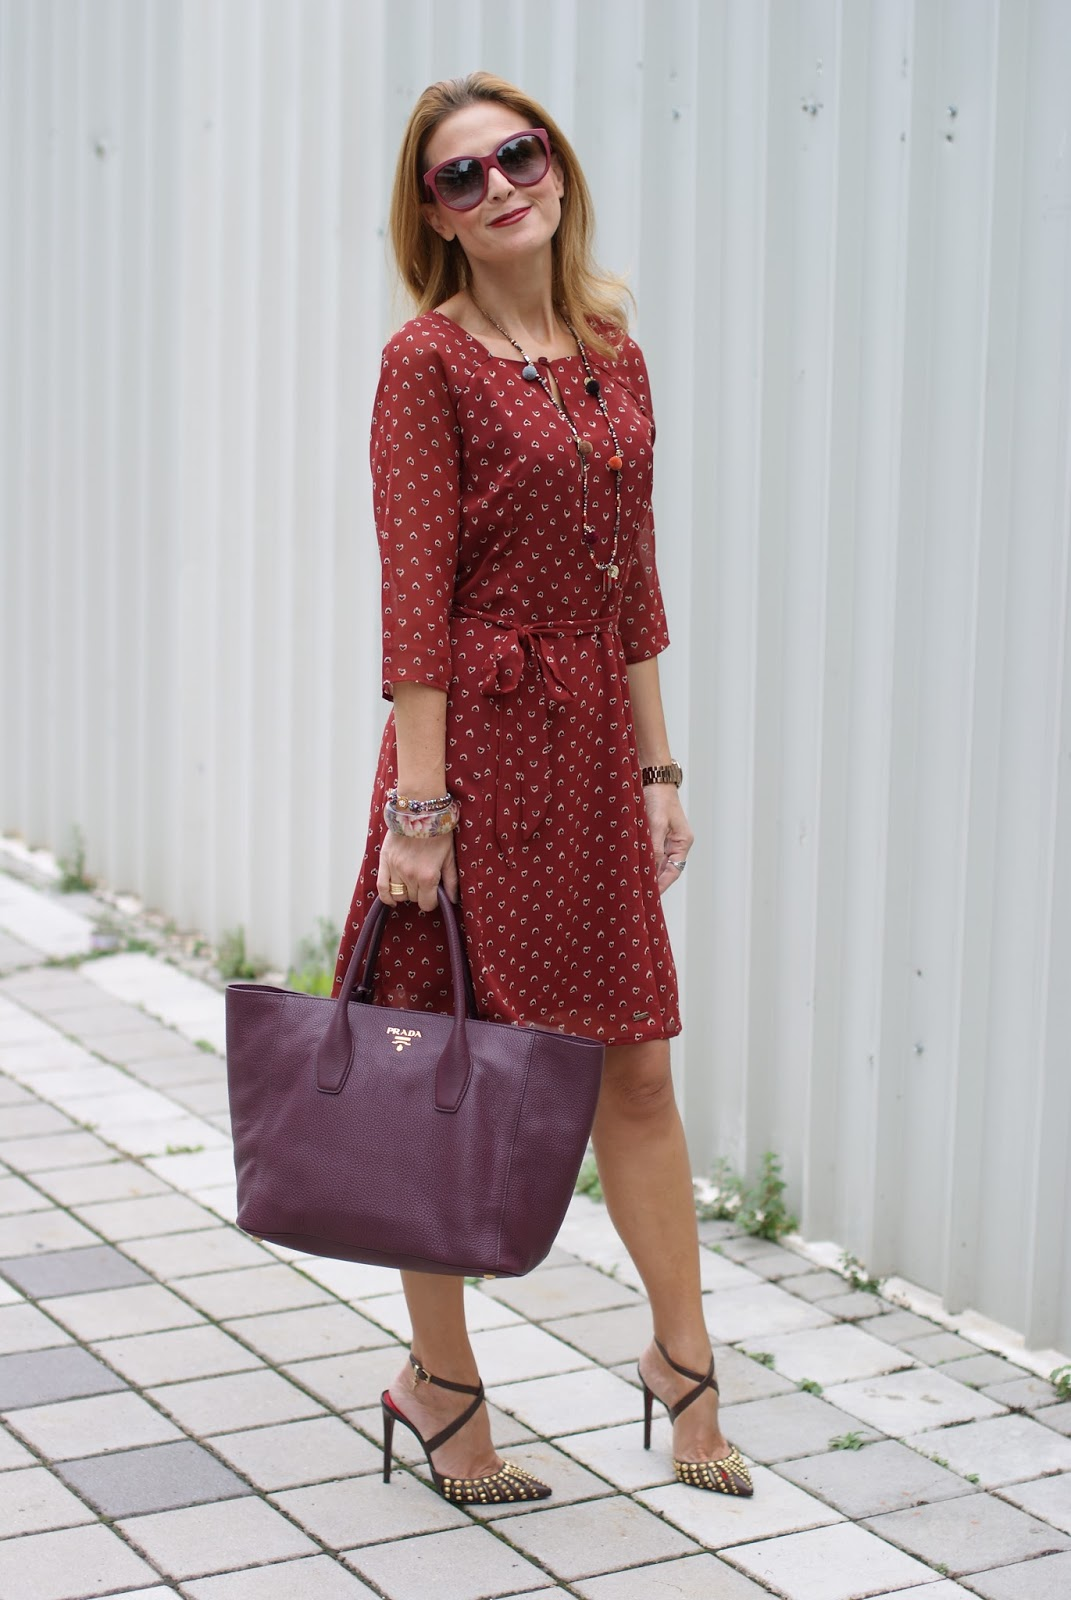 Mismash rust Zuchi dress, studded heels and burgundy Prada tote on Fashion and Cookies fashion blog, fashion blogger style